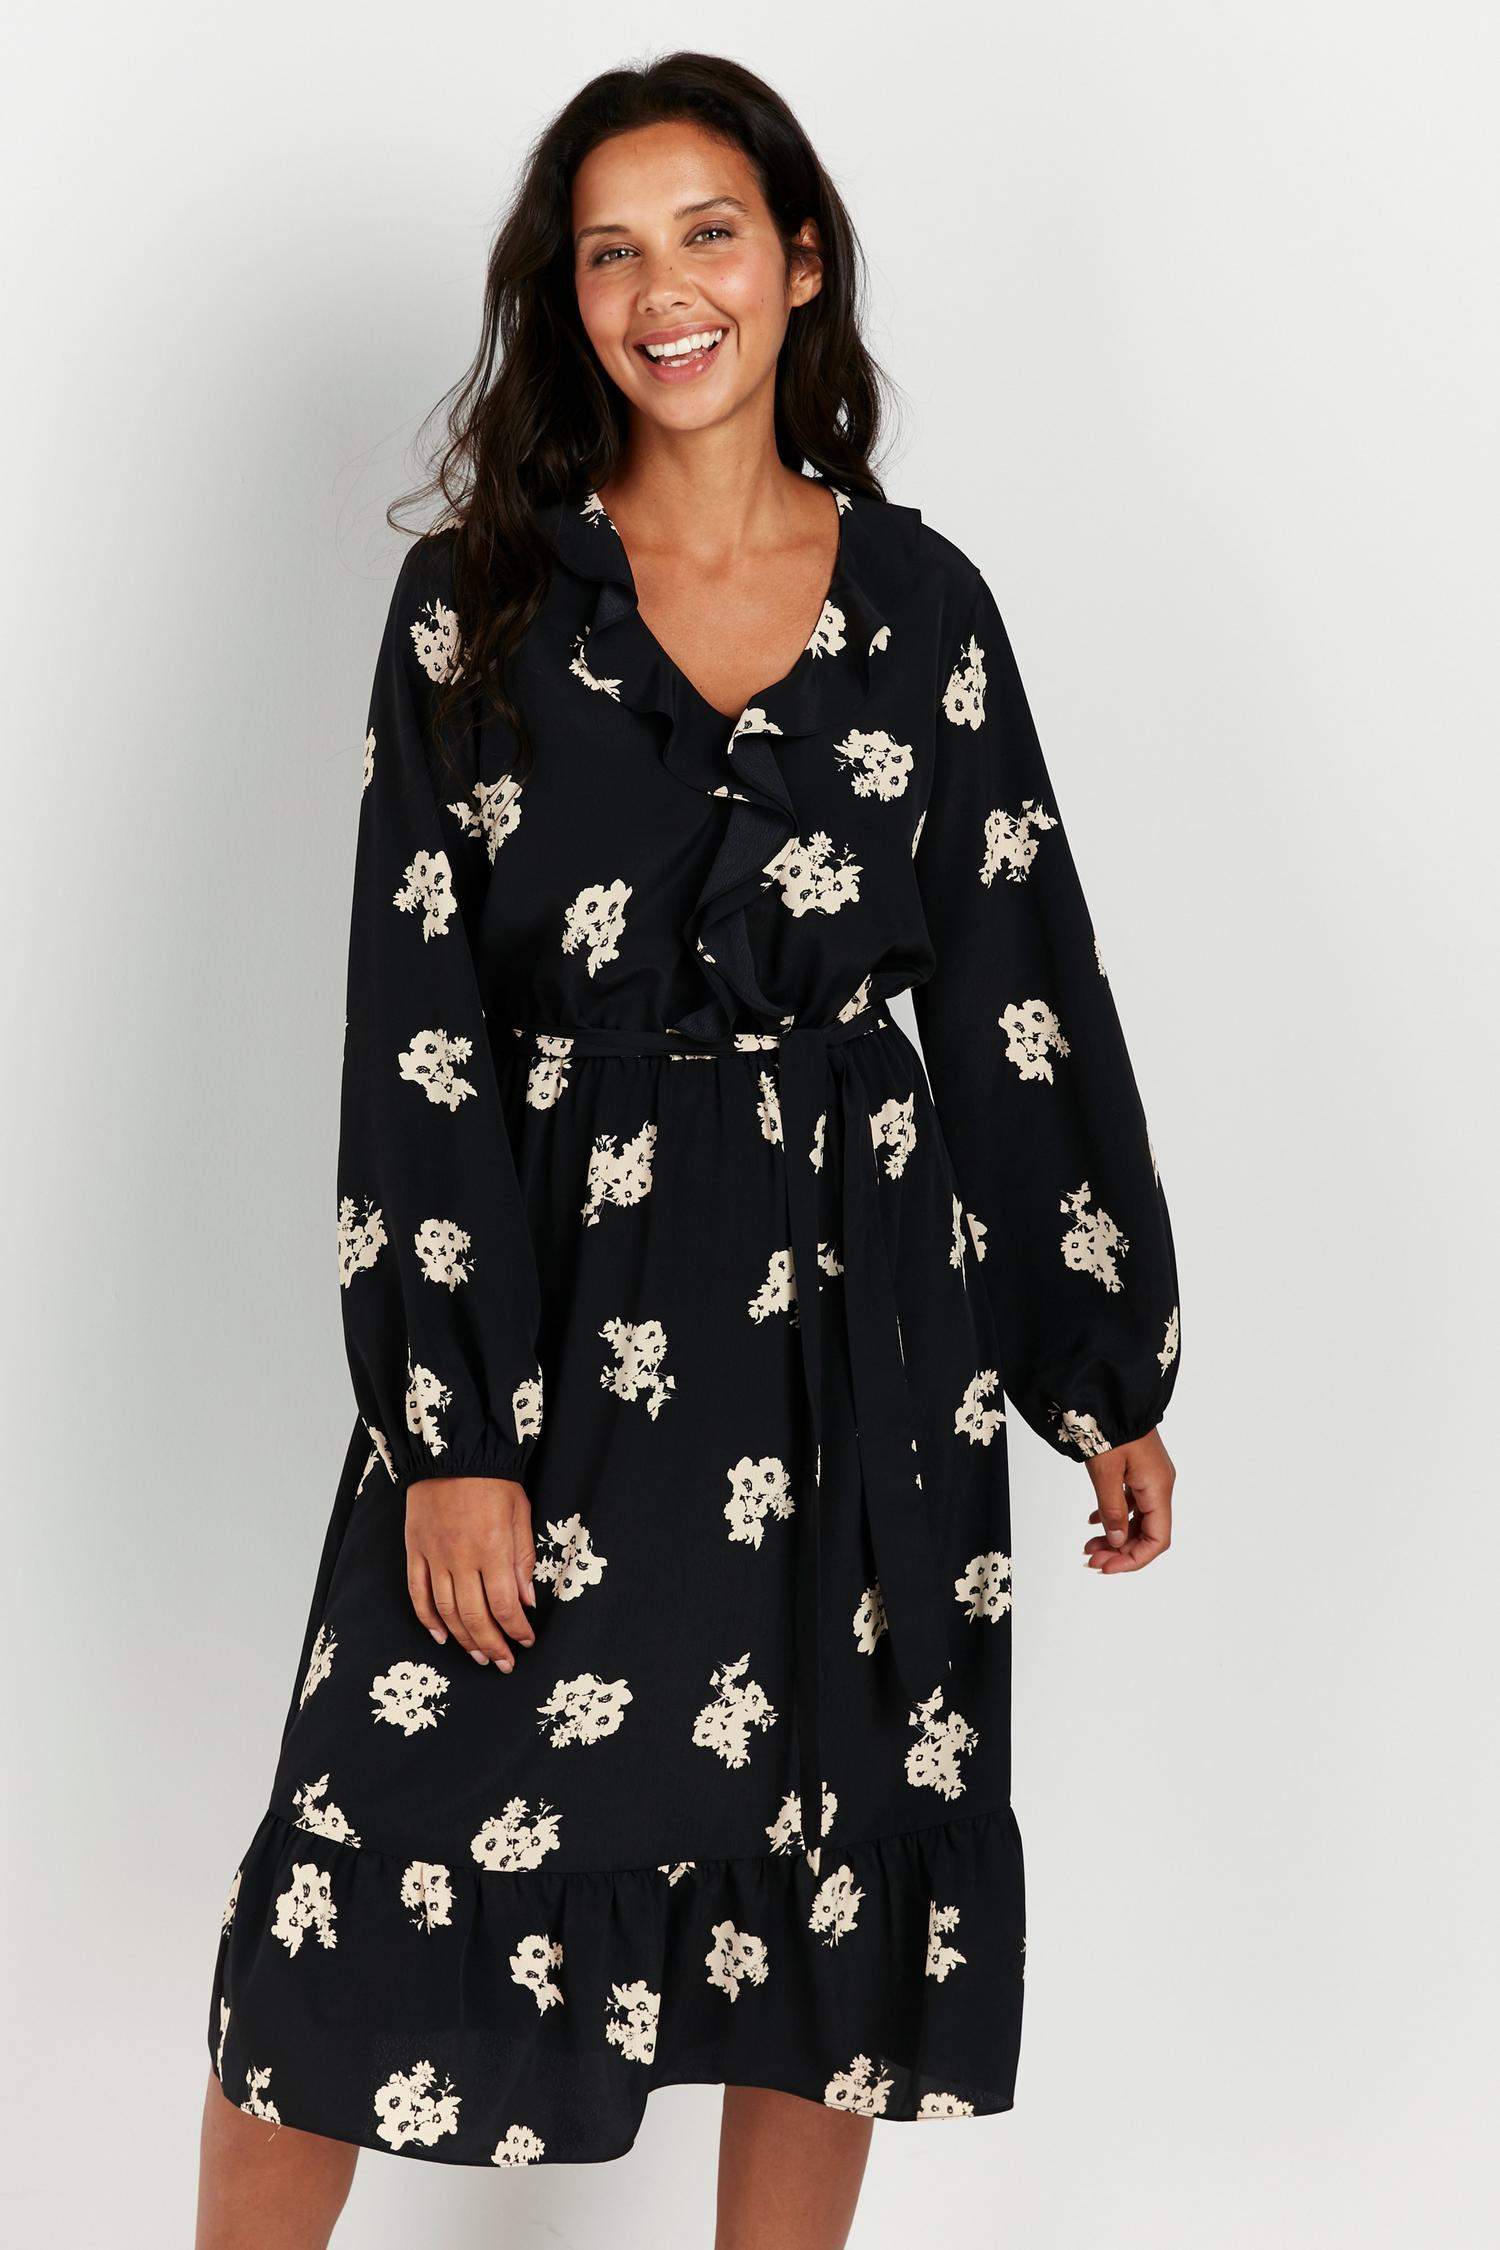 165 Black Floral Print Ruffle Front Midi Dress image number 3